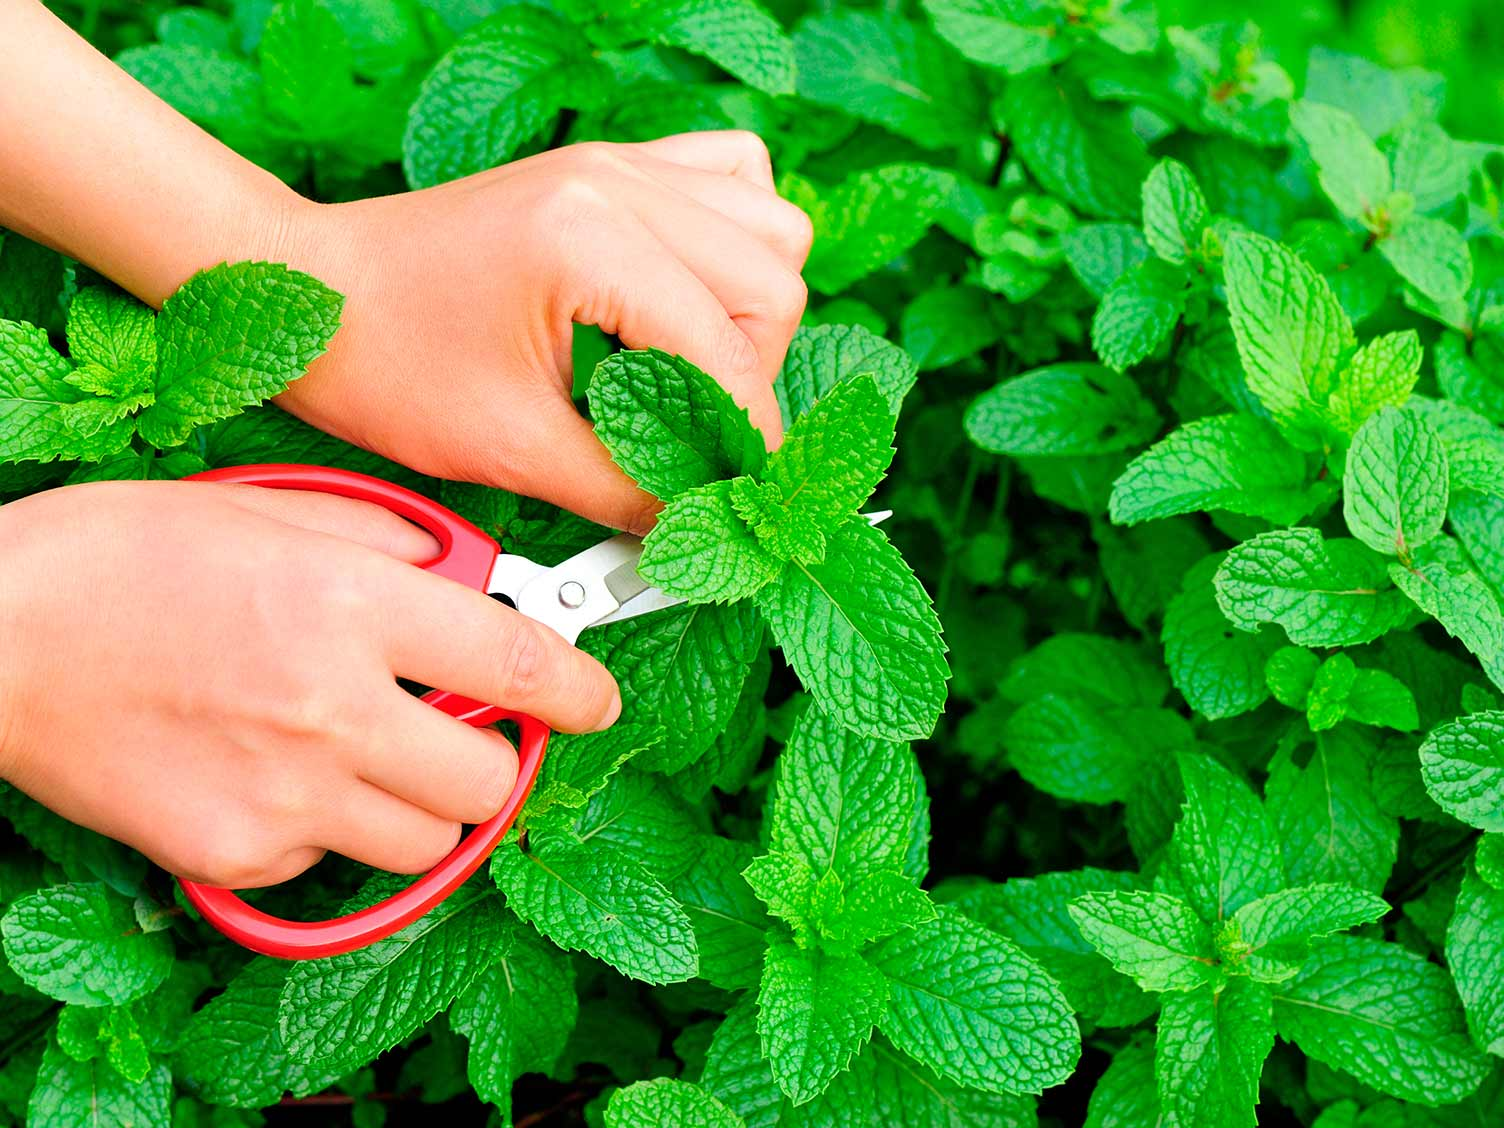 Harvesting fresh mint